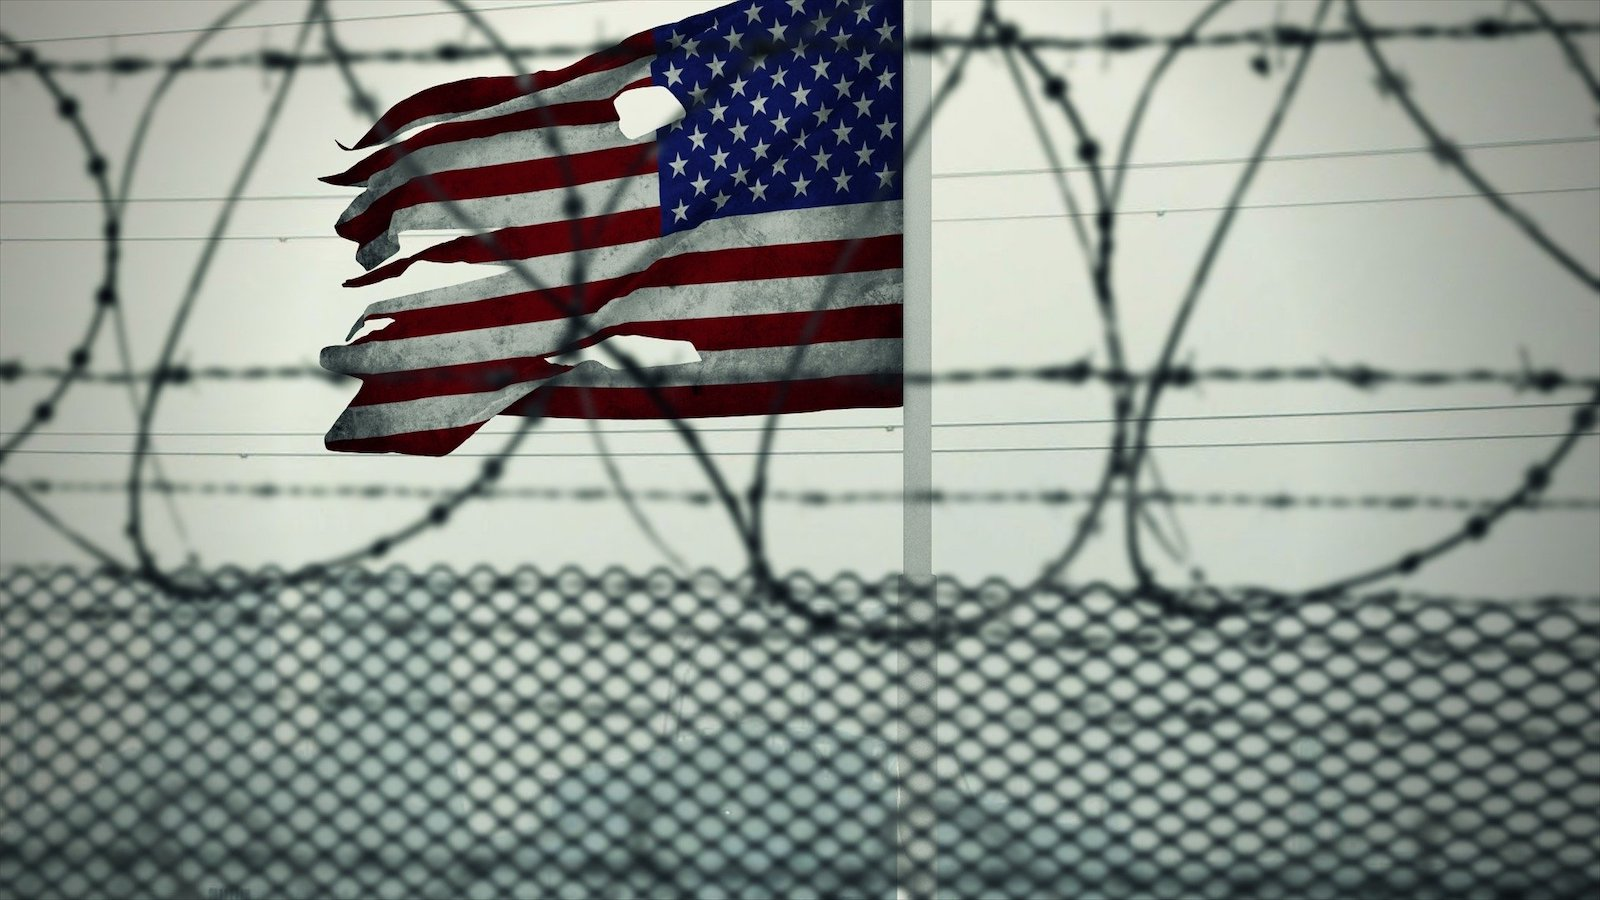 'The Forever Prison': Carol Rosenberg and John Kirby on Guantánamo Bay